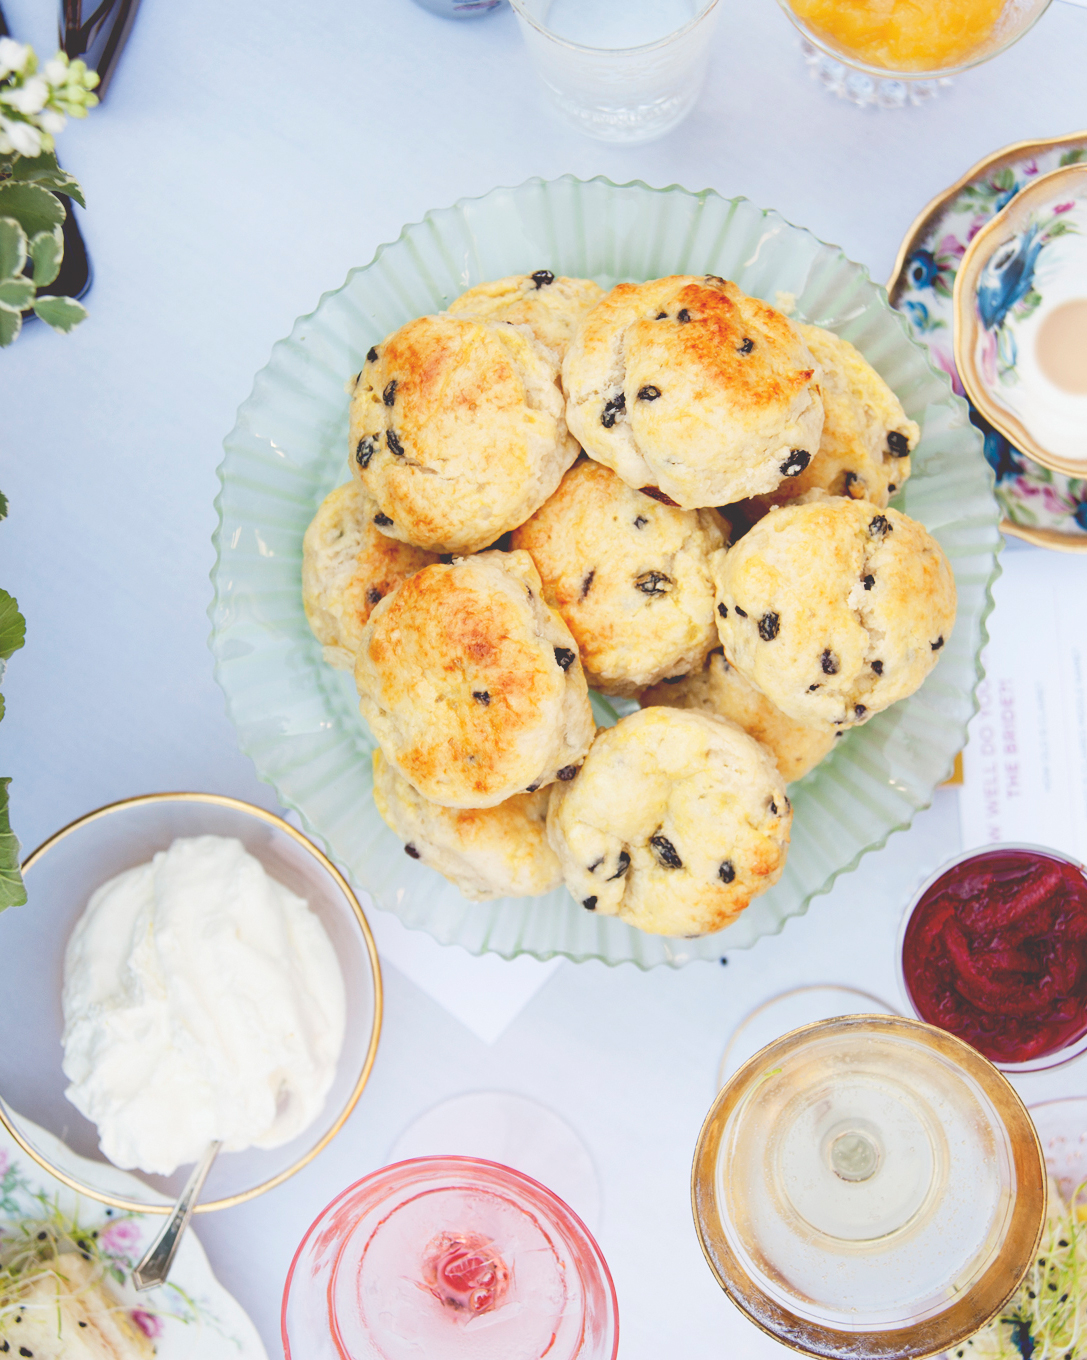 claire-thomas-bridal-shower-tea-scones-0215